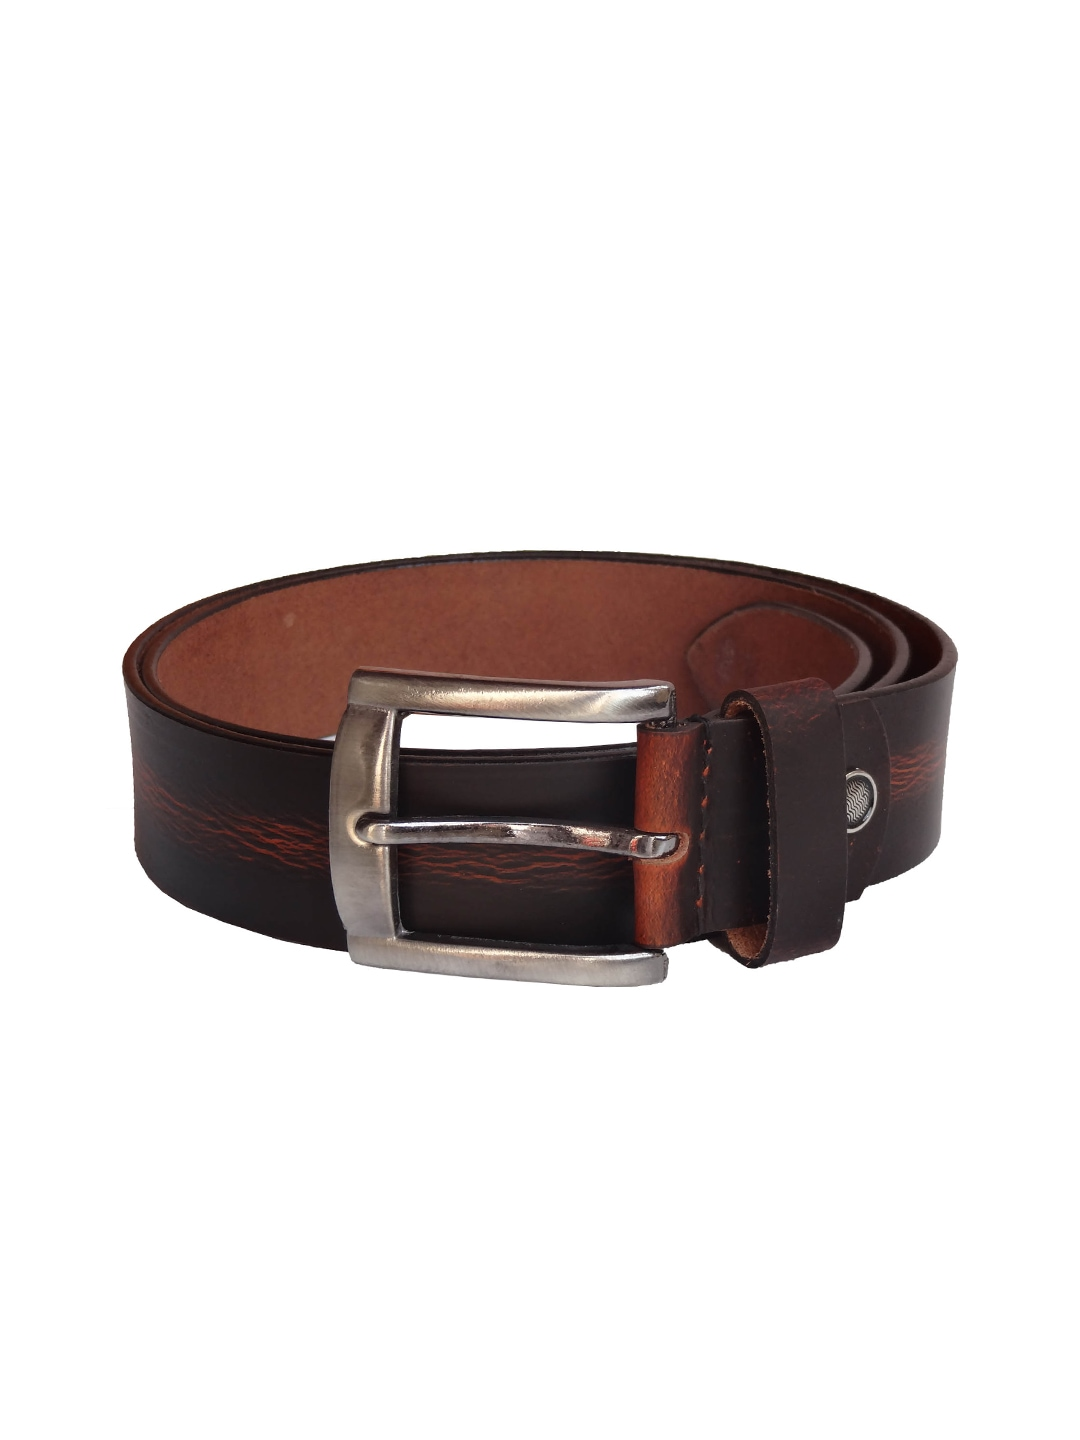 myntra excorio brown leather belt 854666 buy myntra